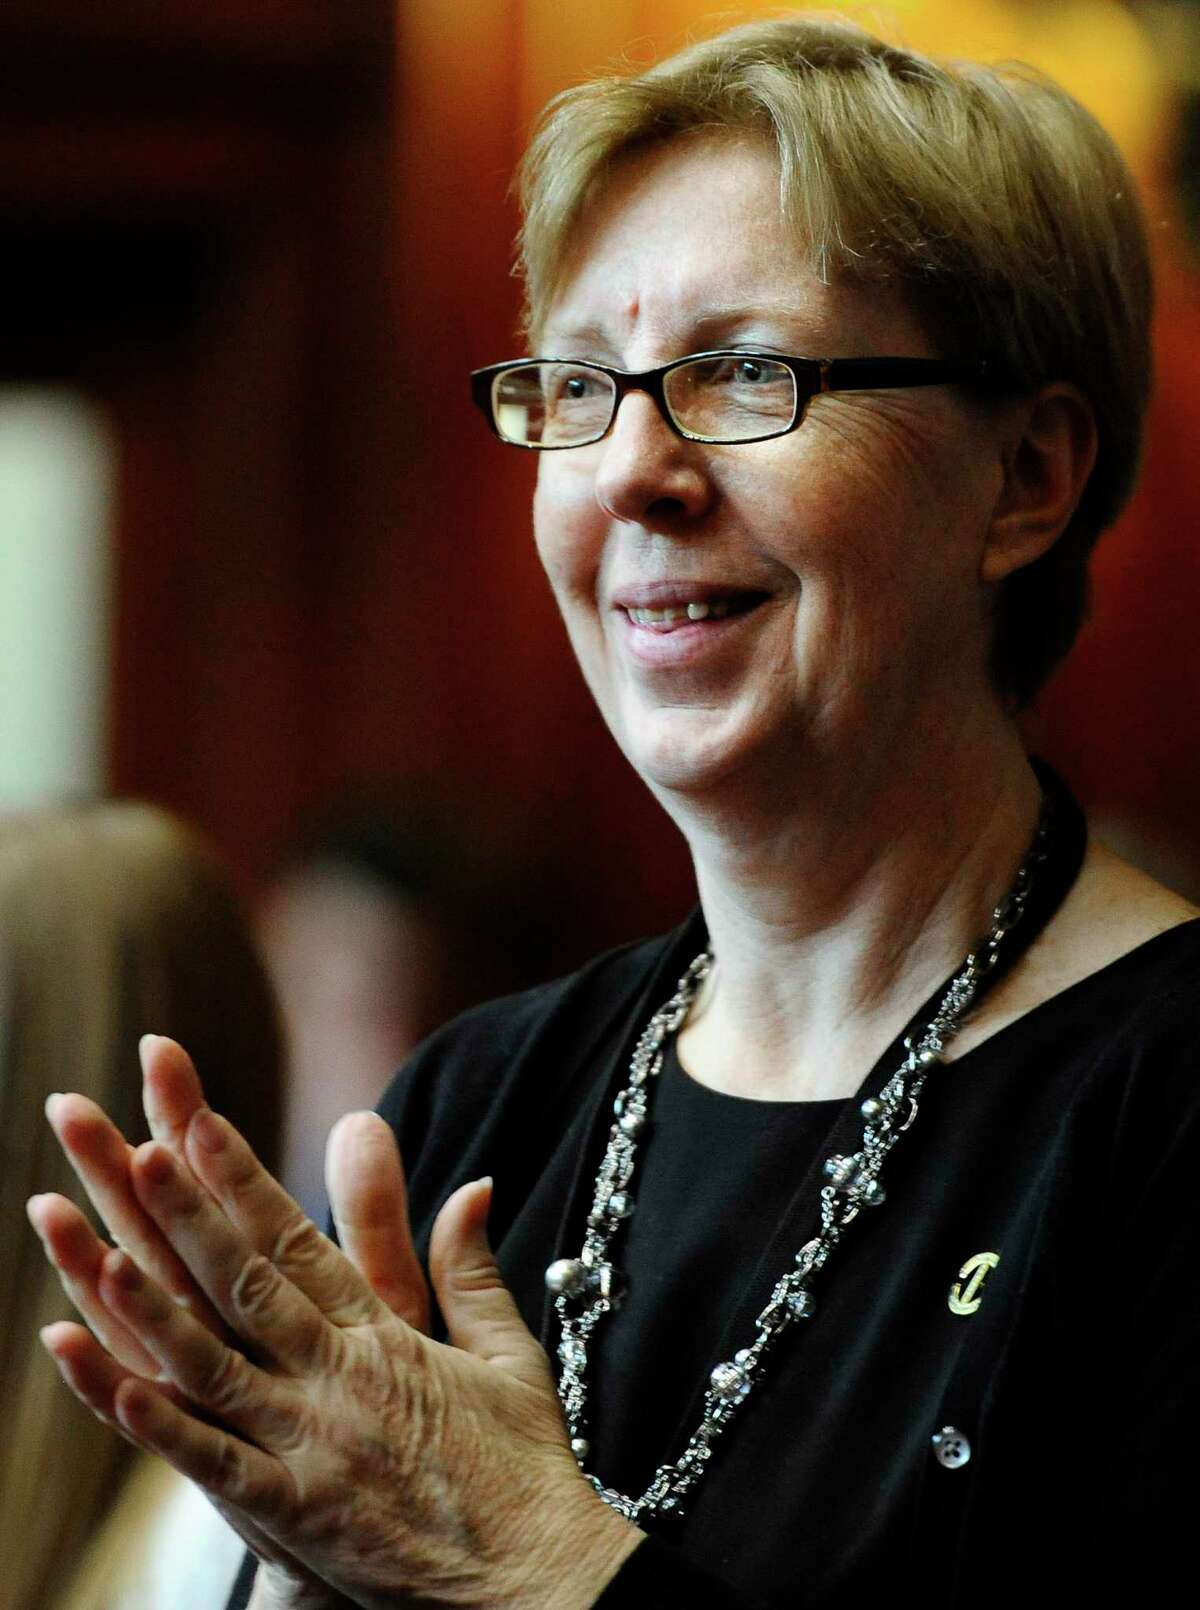 State Sen. Cathy Osten, D-Sprague, wants to require school systems to teach a section on Native American history.